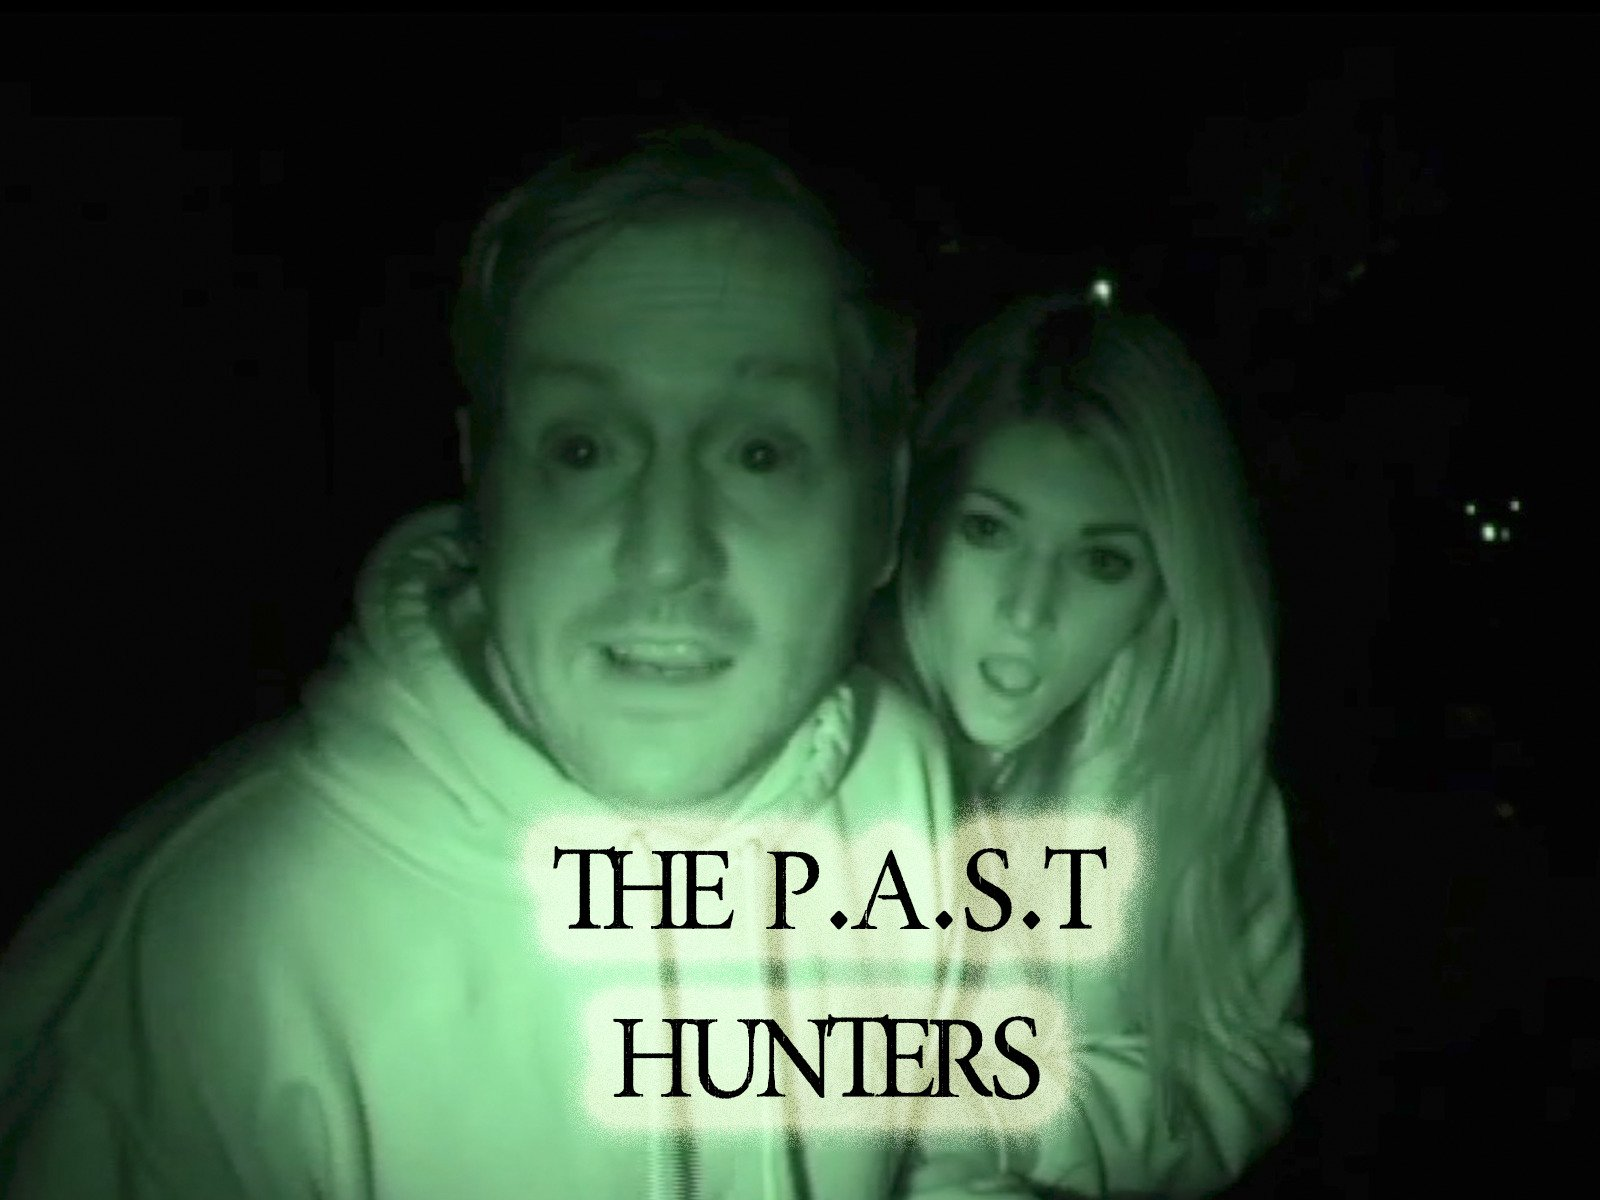 The P.A.S.T Hunters - Season 1